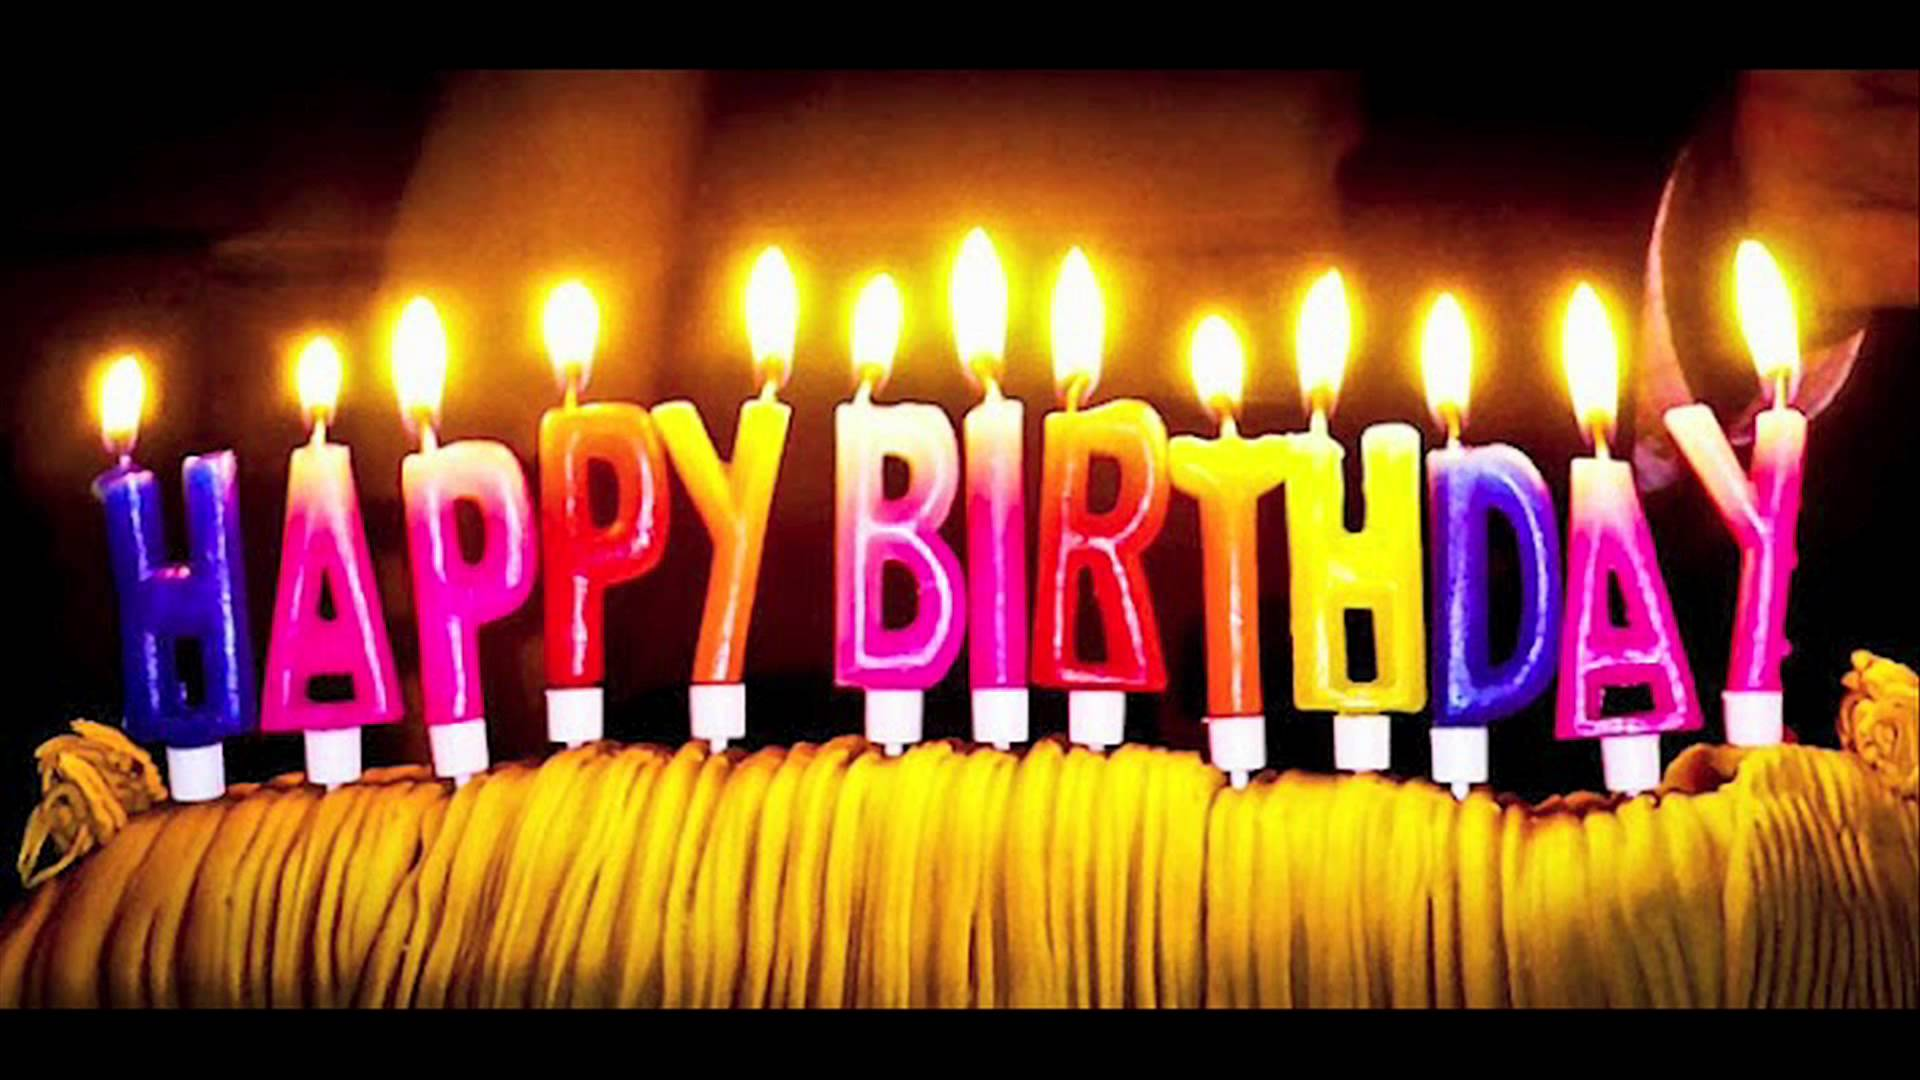 birth day hd images ; 38009179-happy-birthday-hd-images